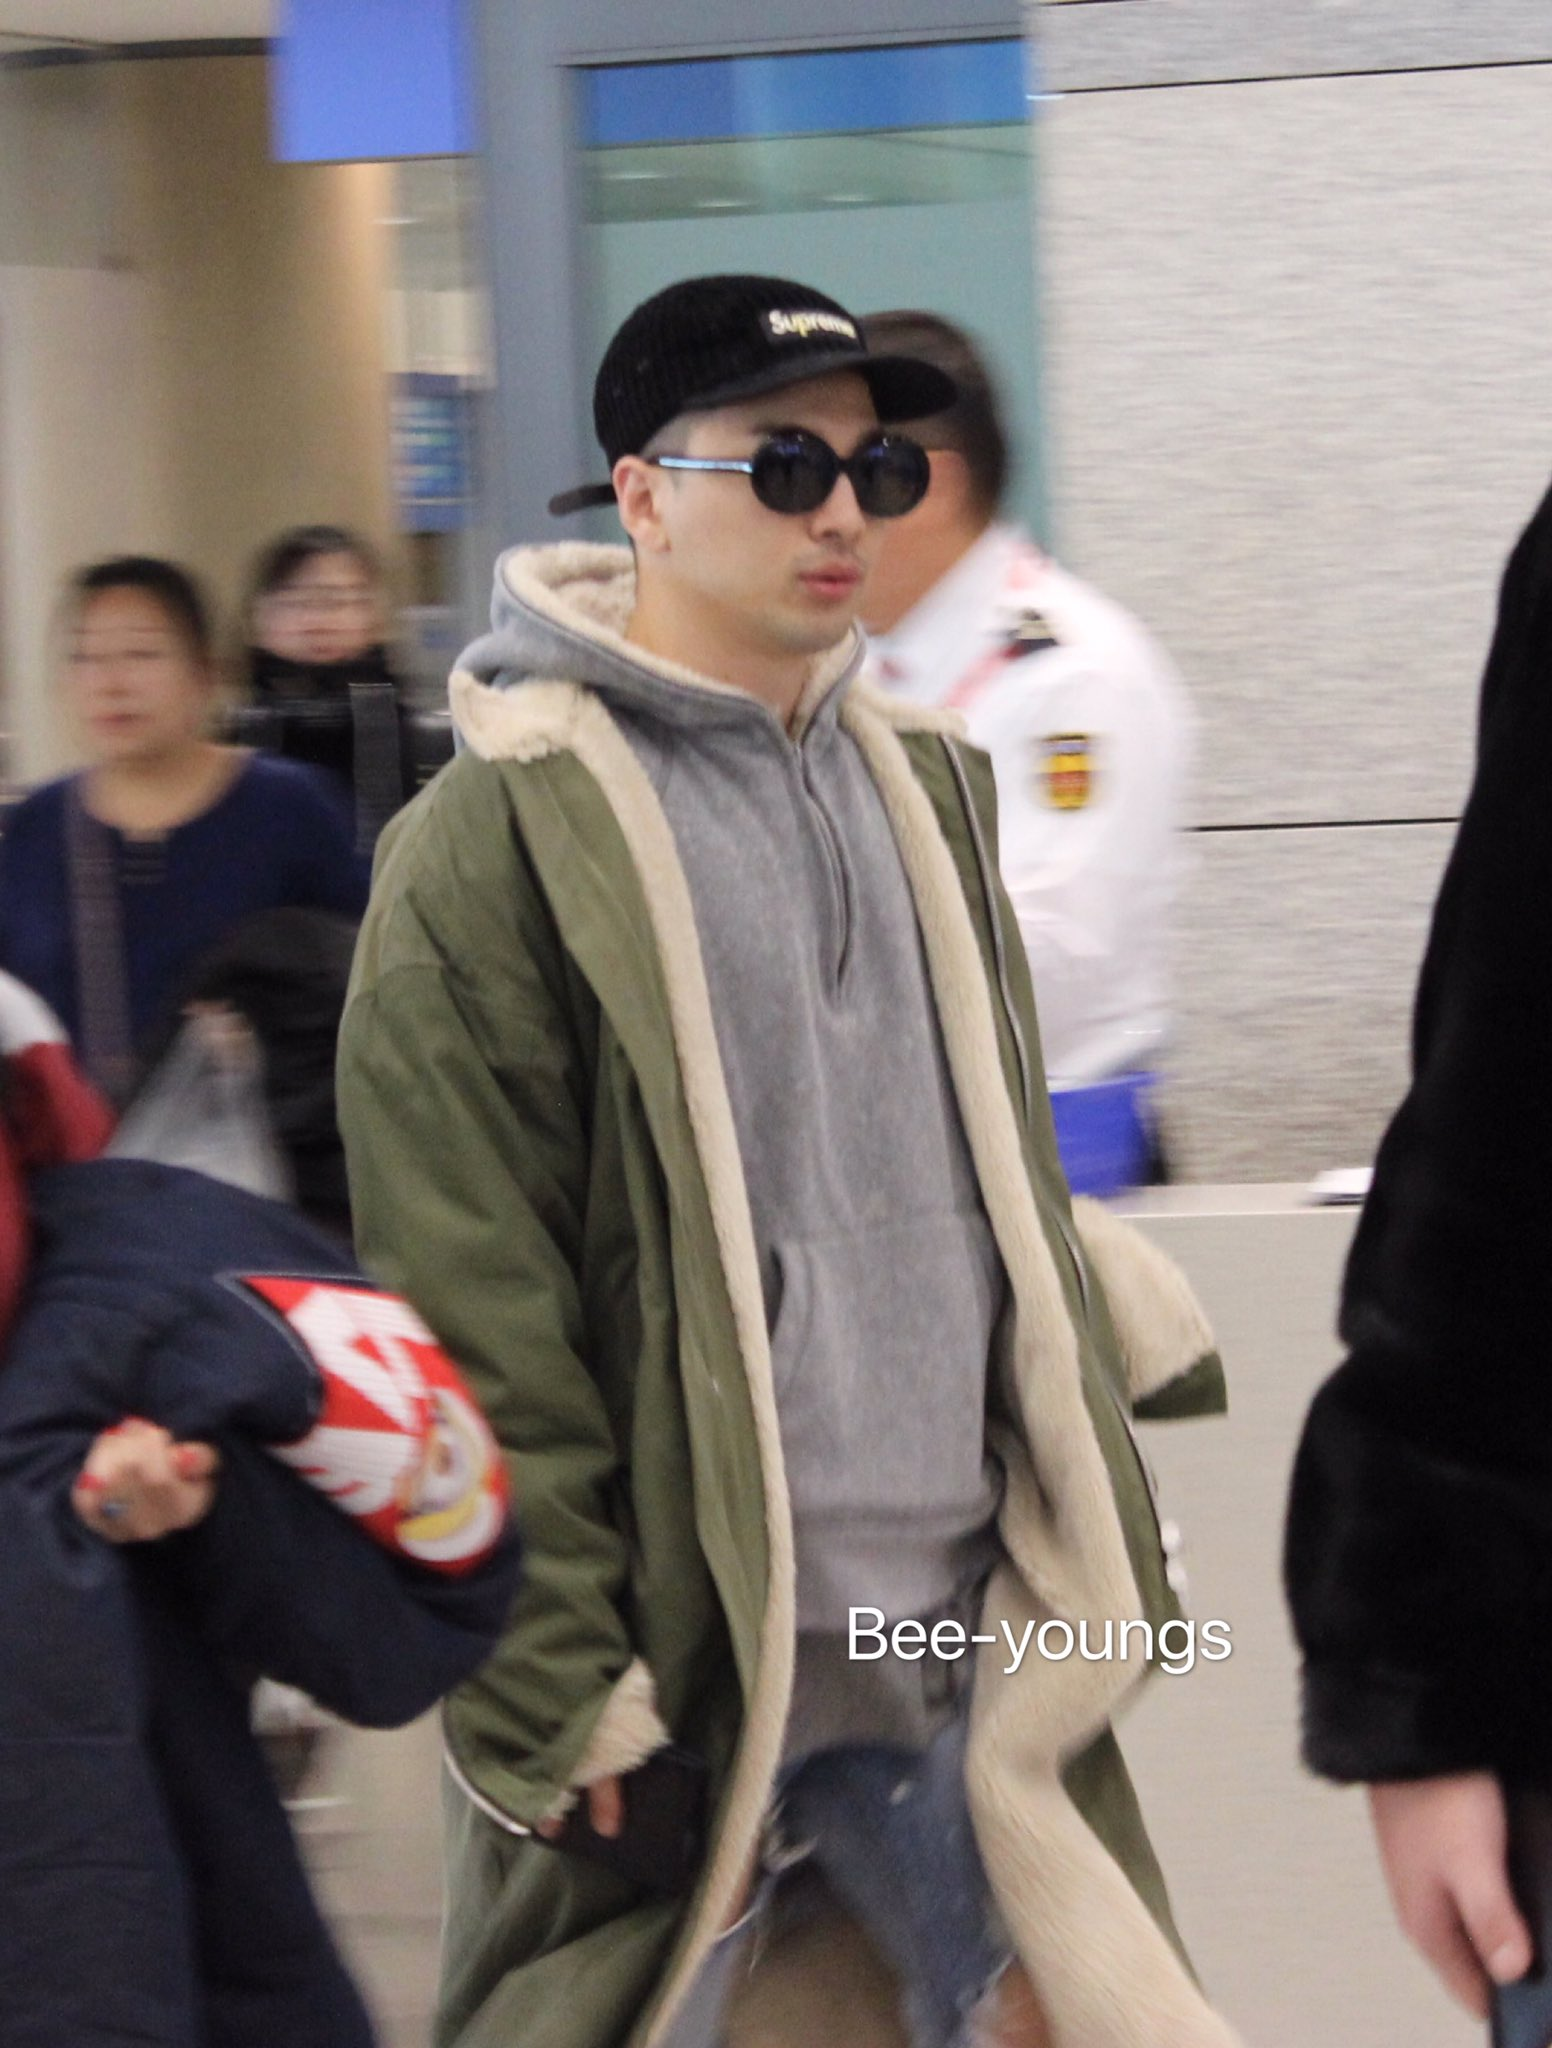 yb-dae-top-arrival-seoul-from-nagoya-2016-12-05-26